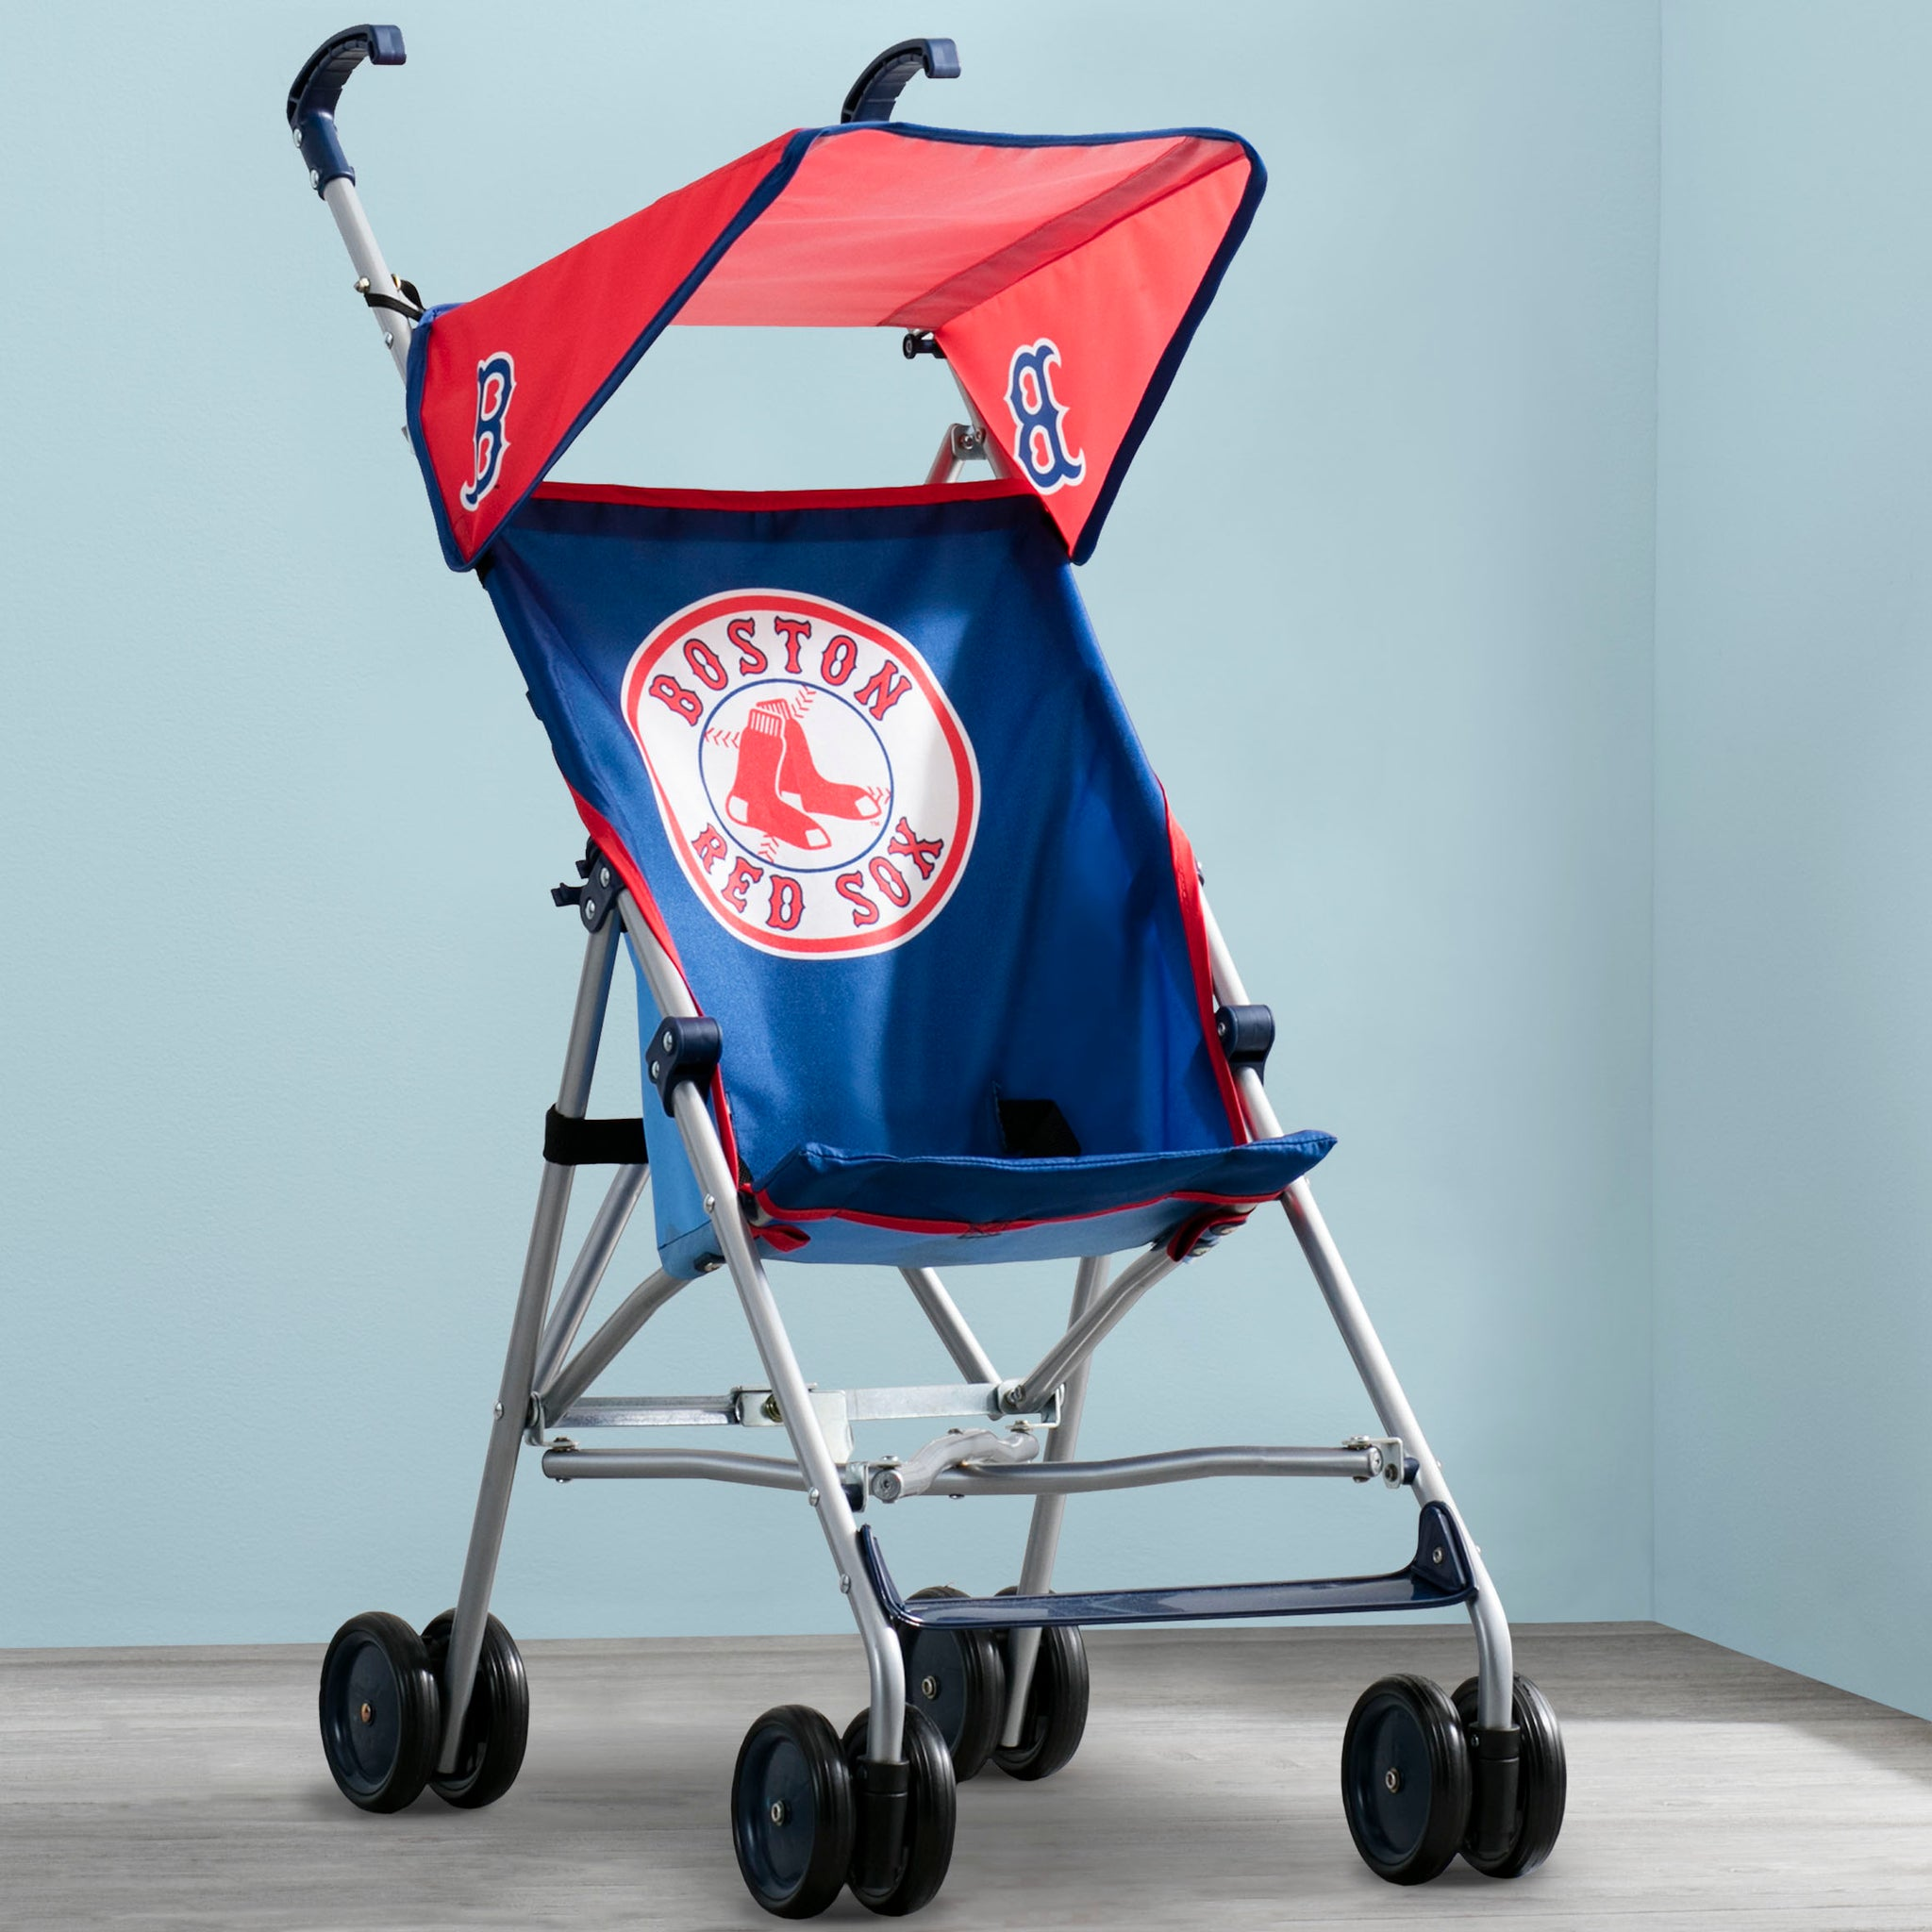 Boston Red Sox Lightweight Umbrella Stroller